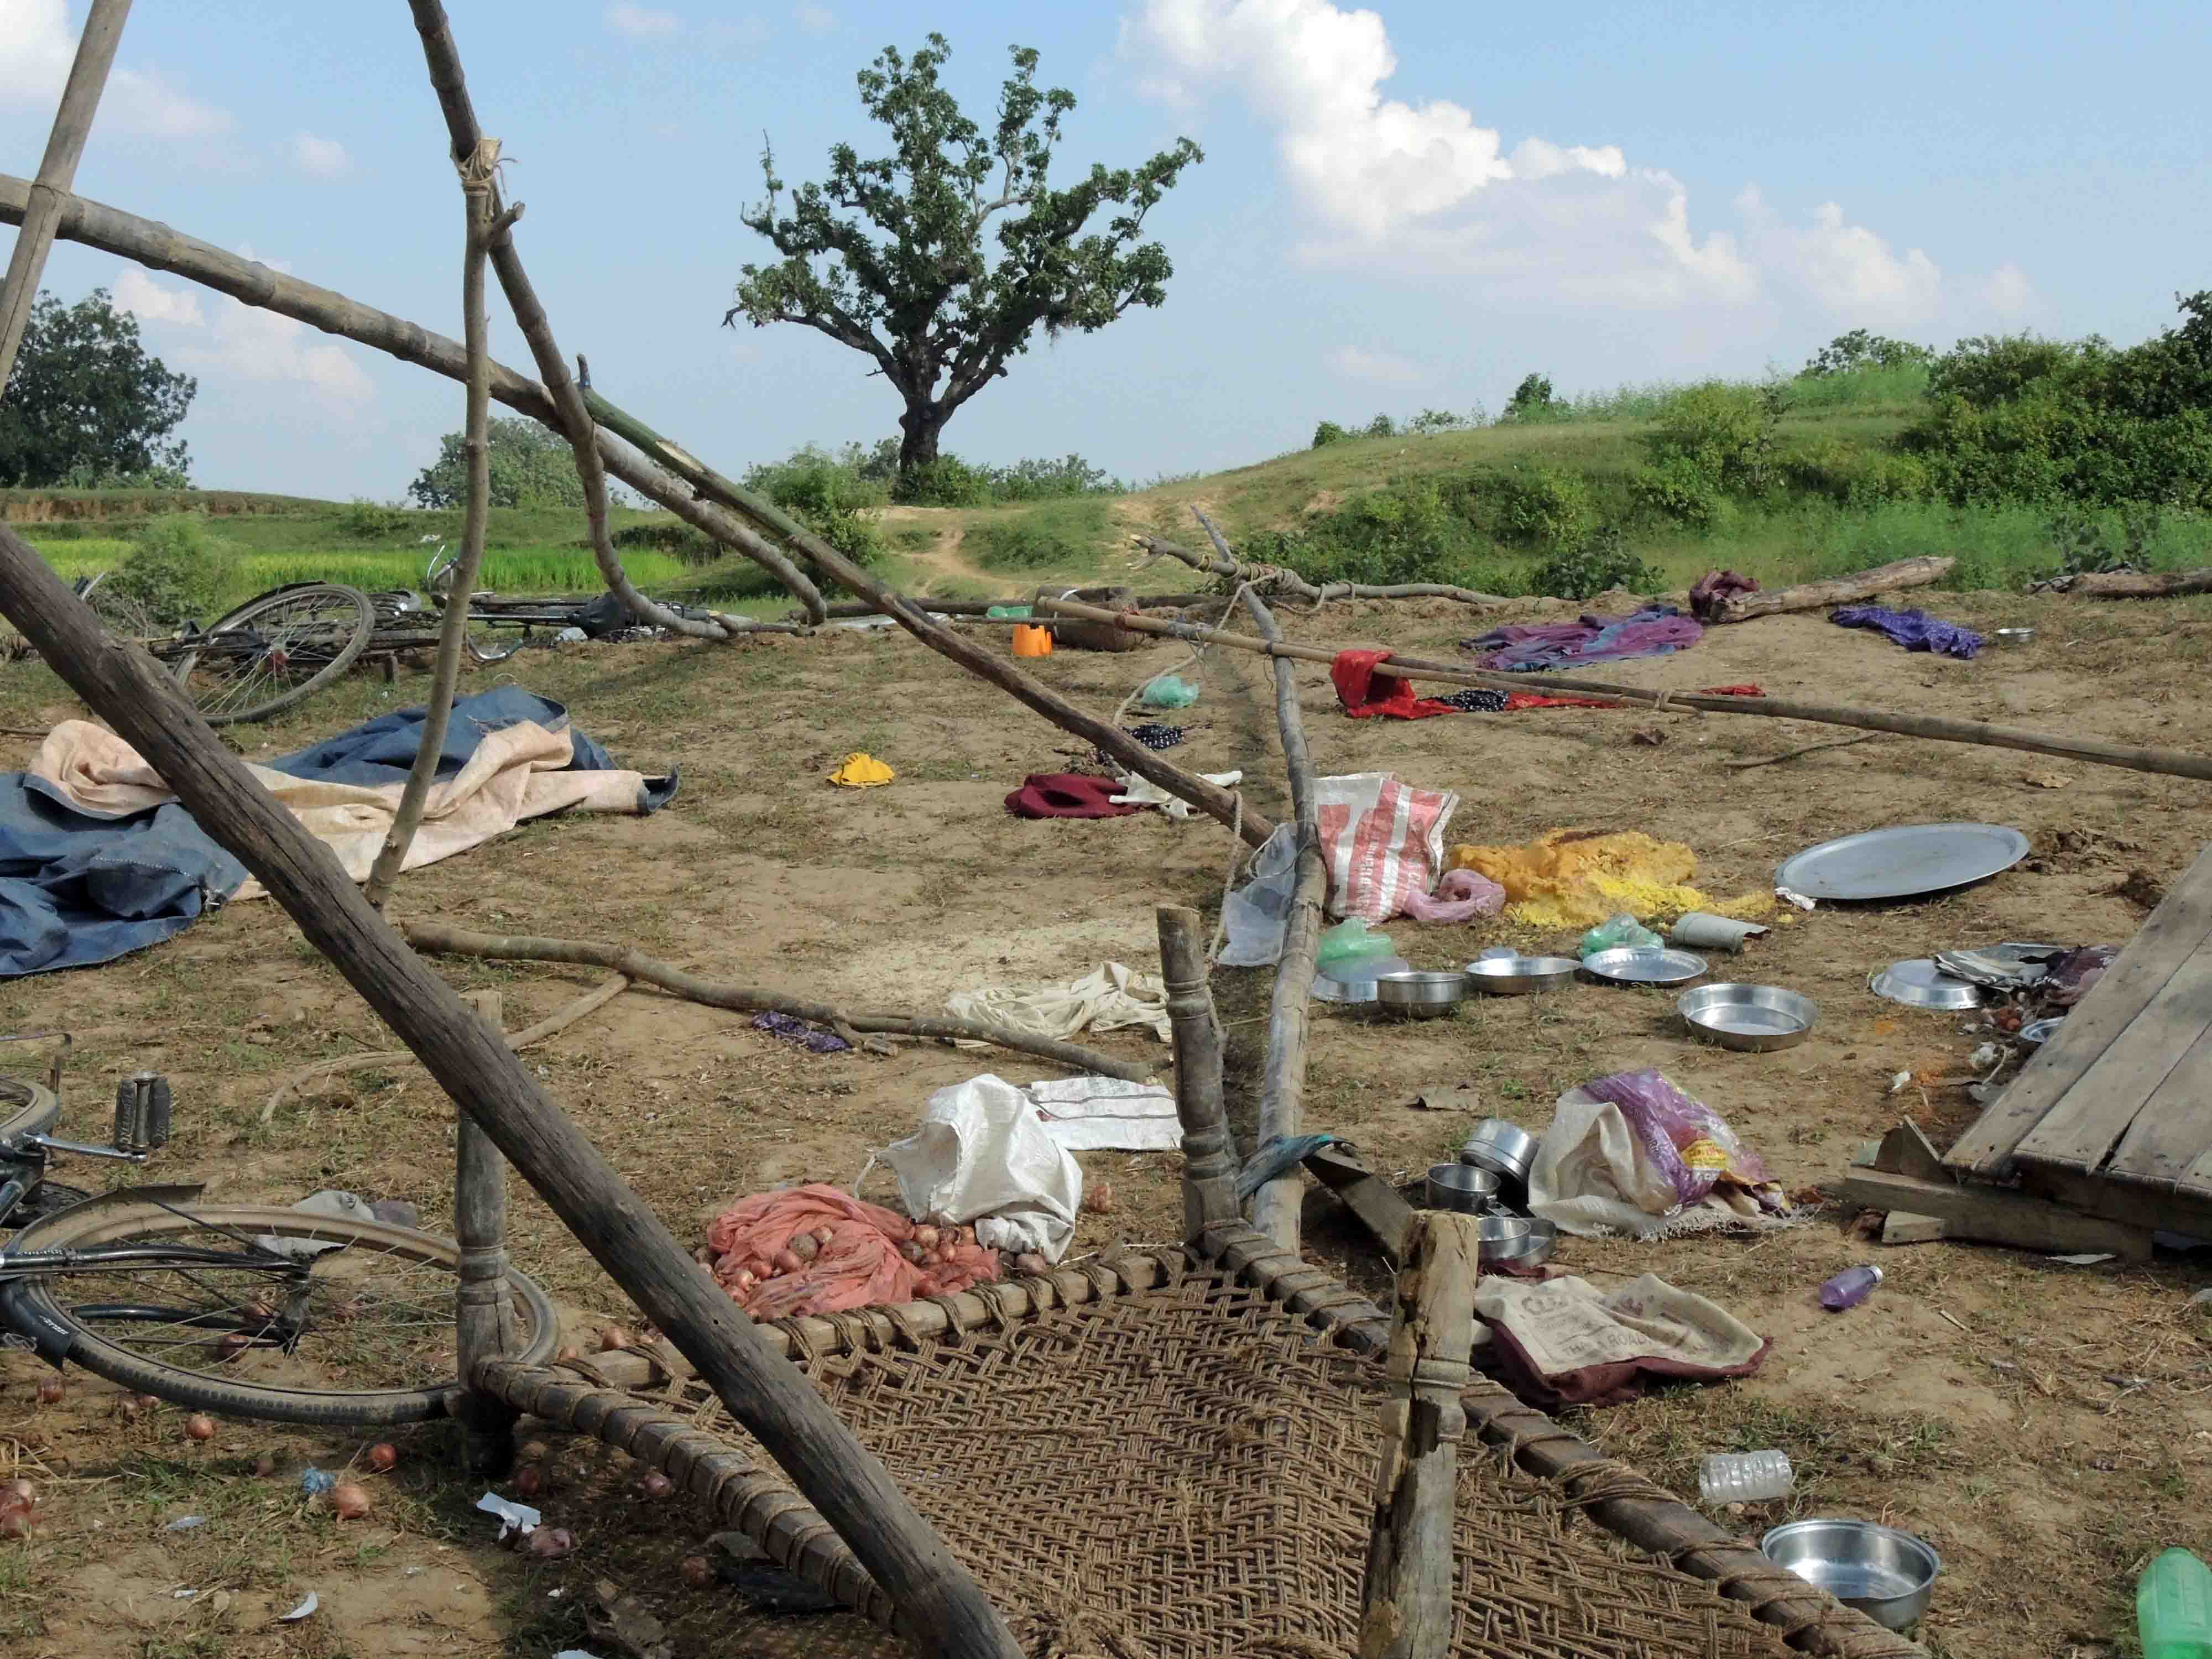 At the protest site in Chiru Barwadih village, the protesting farmers' utensils and blankets lay torn and scattered on Monday. Credit: Manob Chowdhury